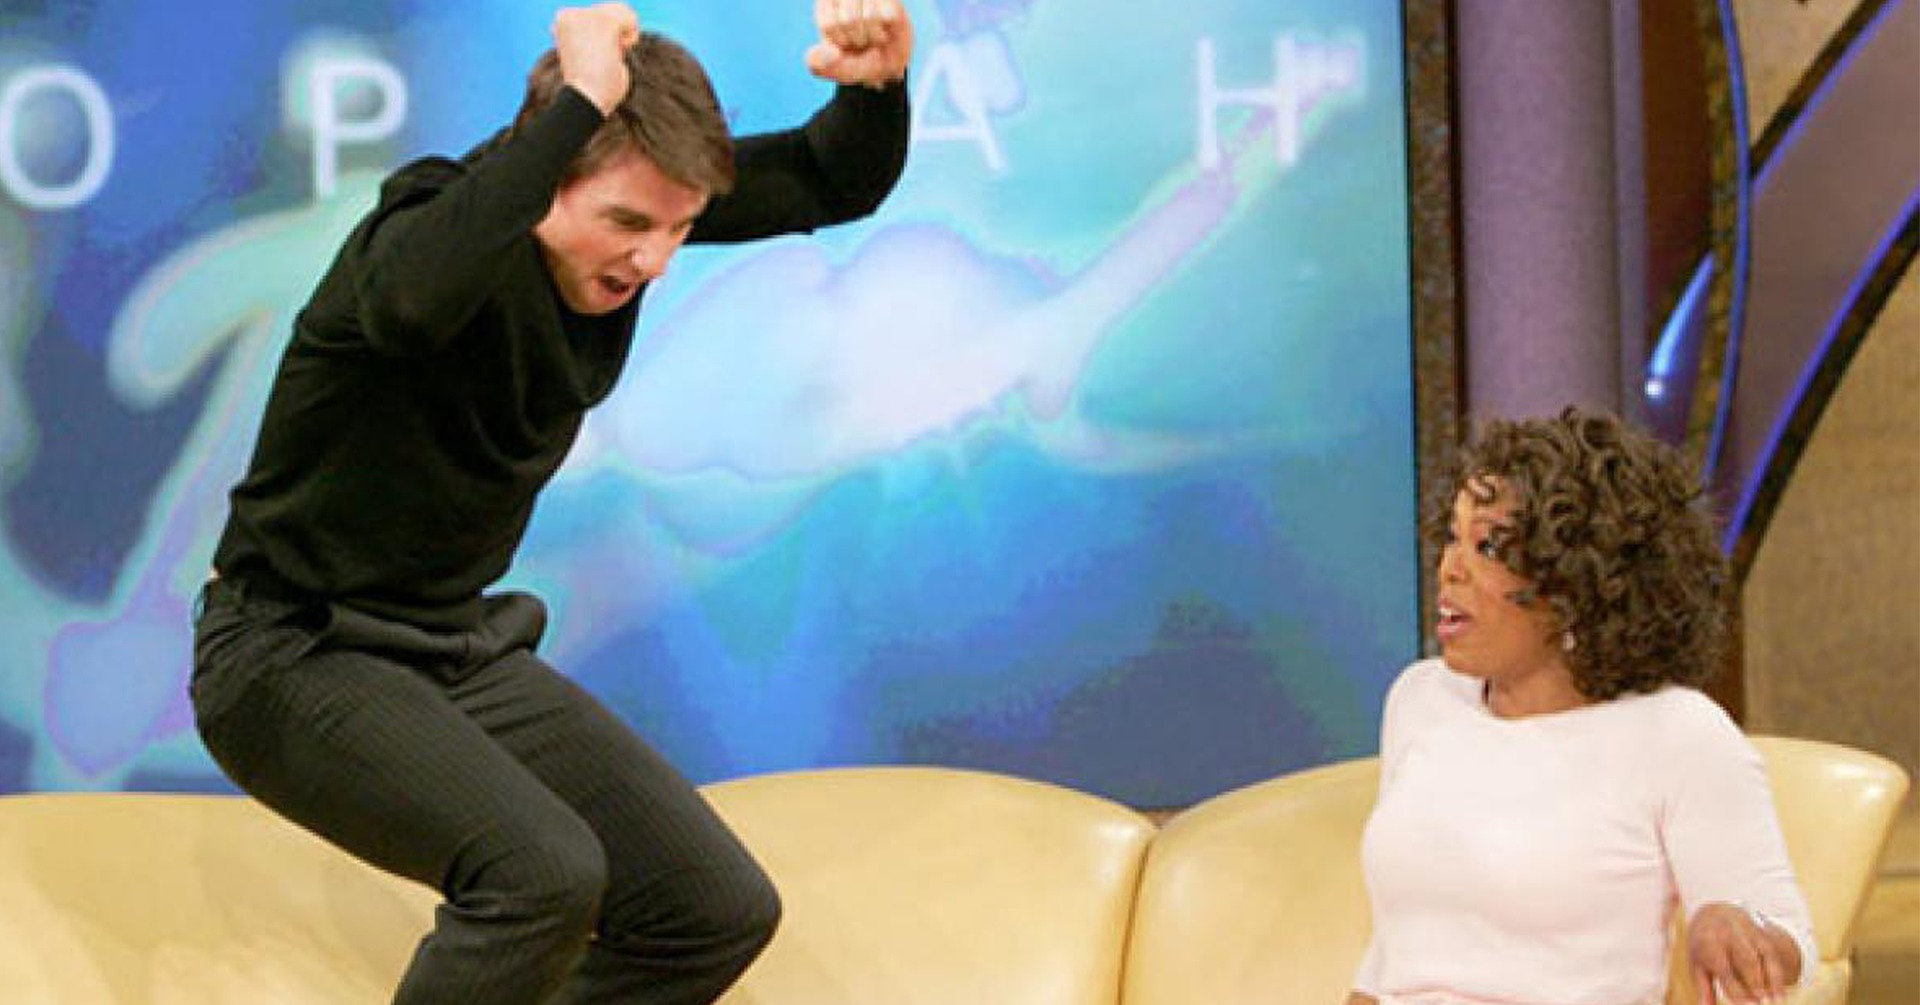 Tom Cruise illustrating clamorous foolishness